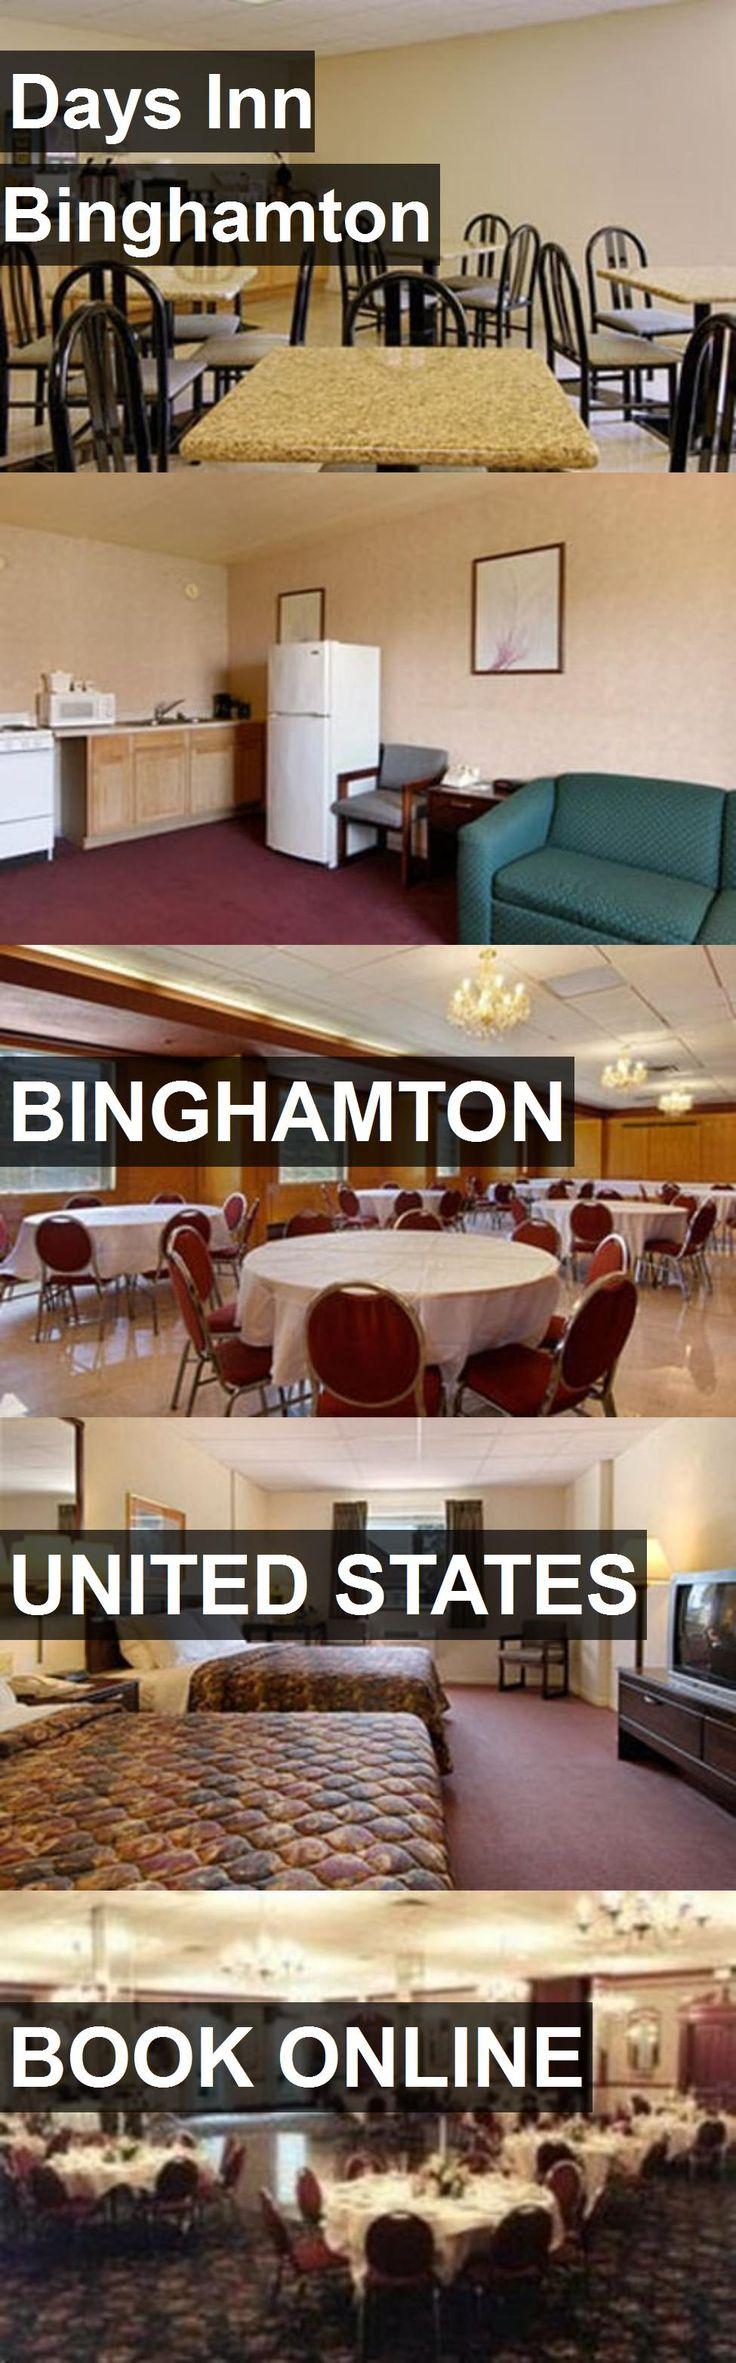 Hotel Days Inn Binghamton in Binghamton, United States. For more information, photos, reviews and best prices please follow the link. #UnitedStates #Binghamton #travel #vacation #hotel